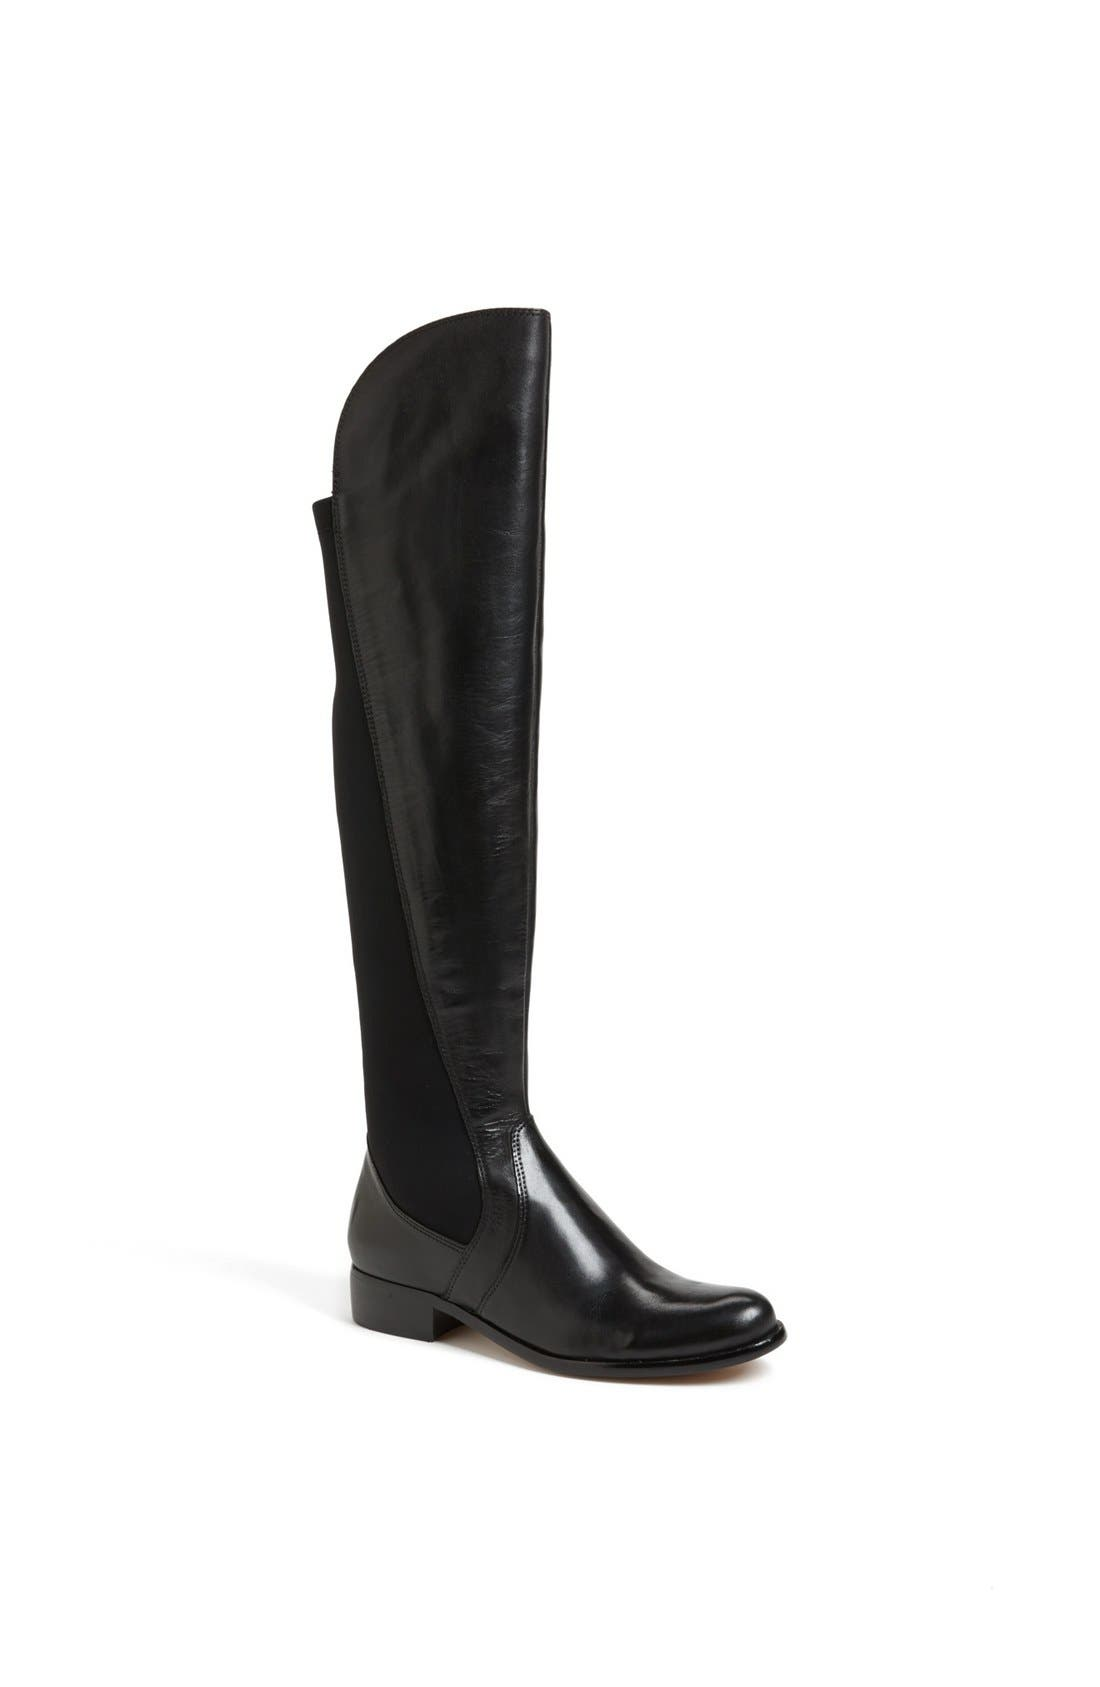 Main Image - Corso Como 'Swift' Over the Knee Boot